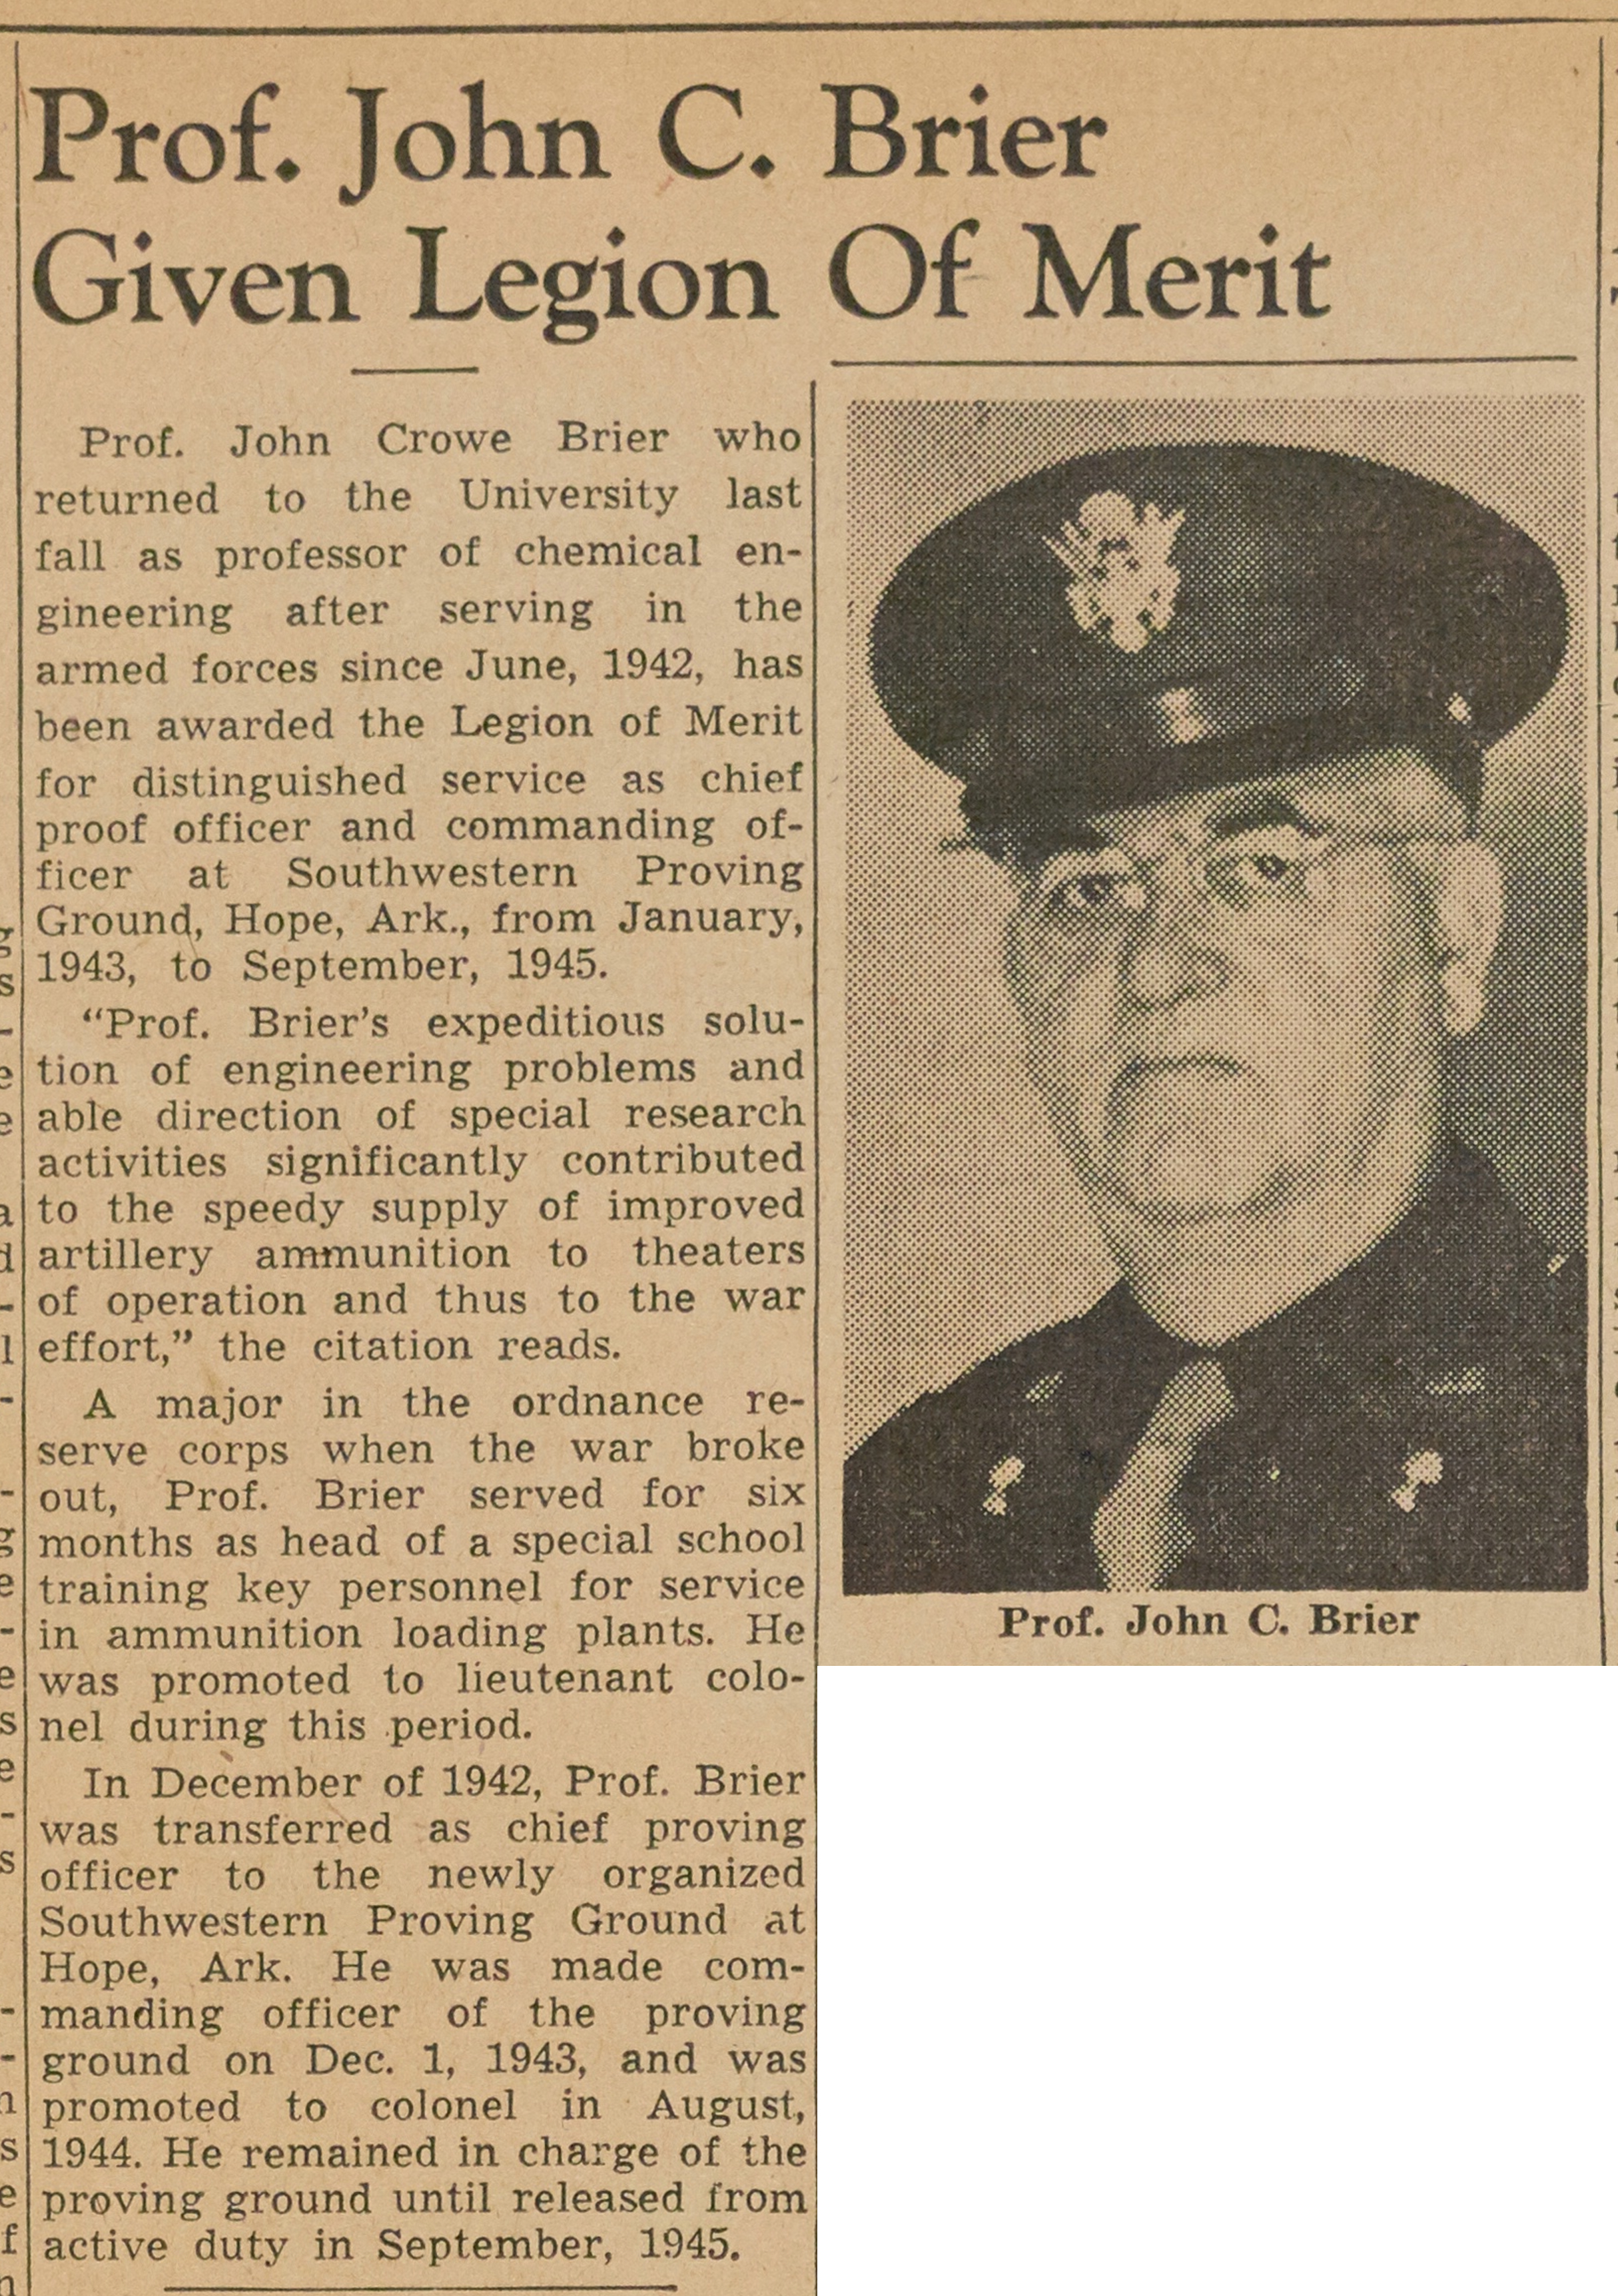 Prof. John C. Brier Given Legion Of Merit image